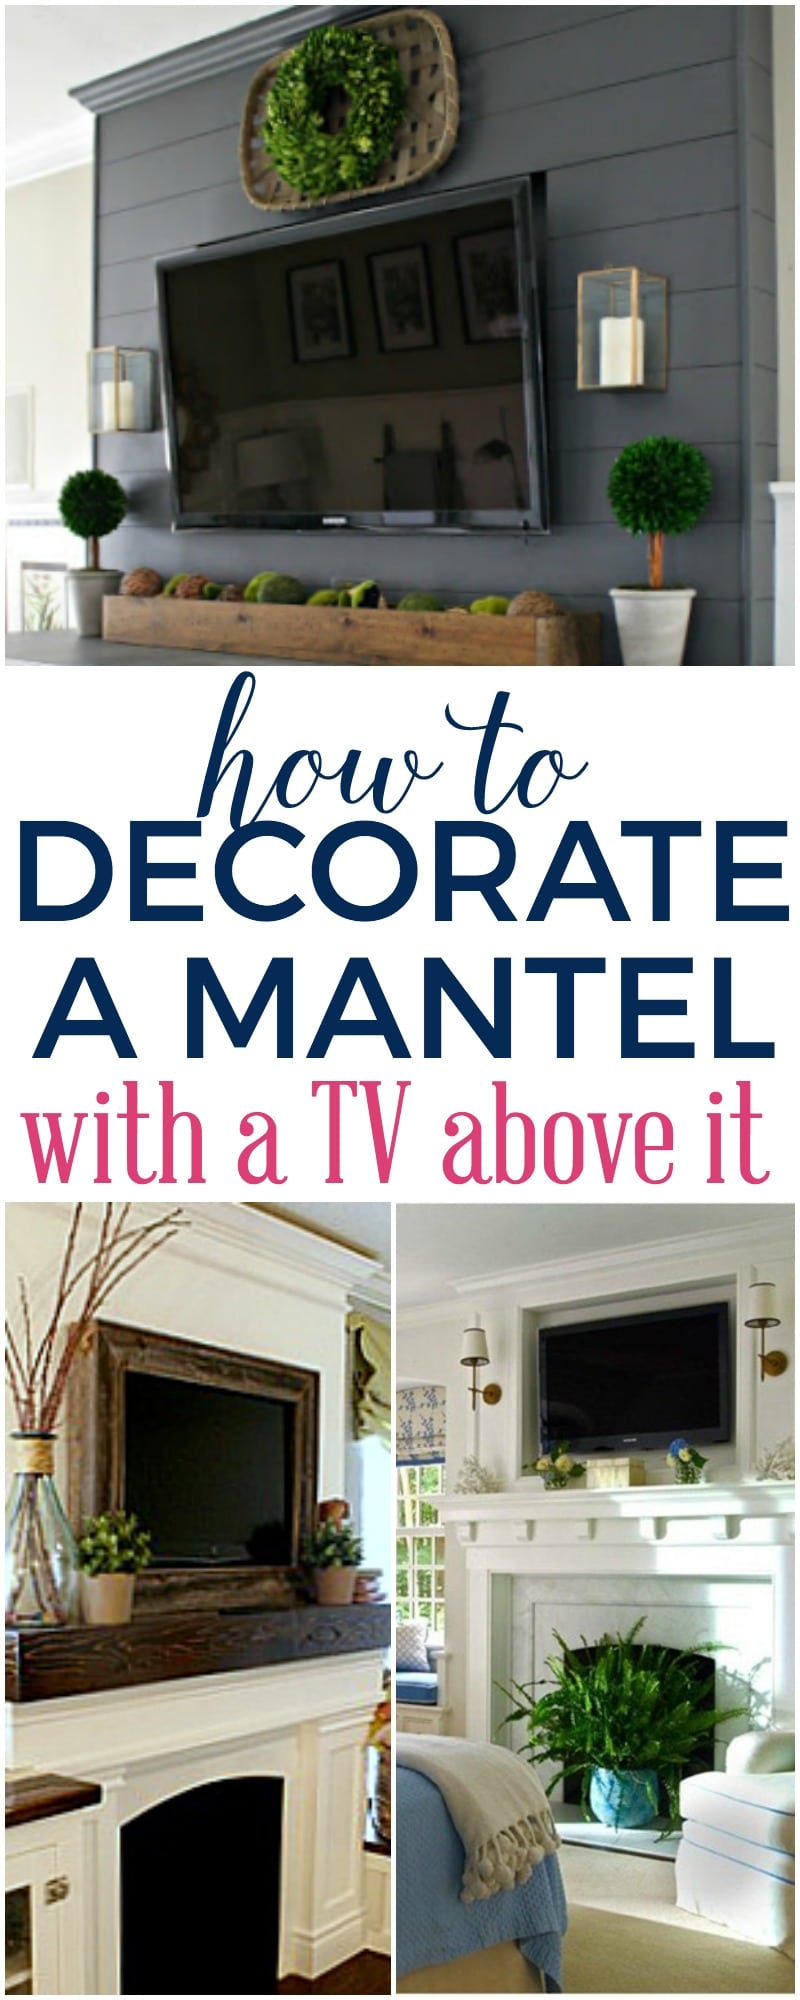 How To Decorate A Mantel With A Tv Above